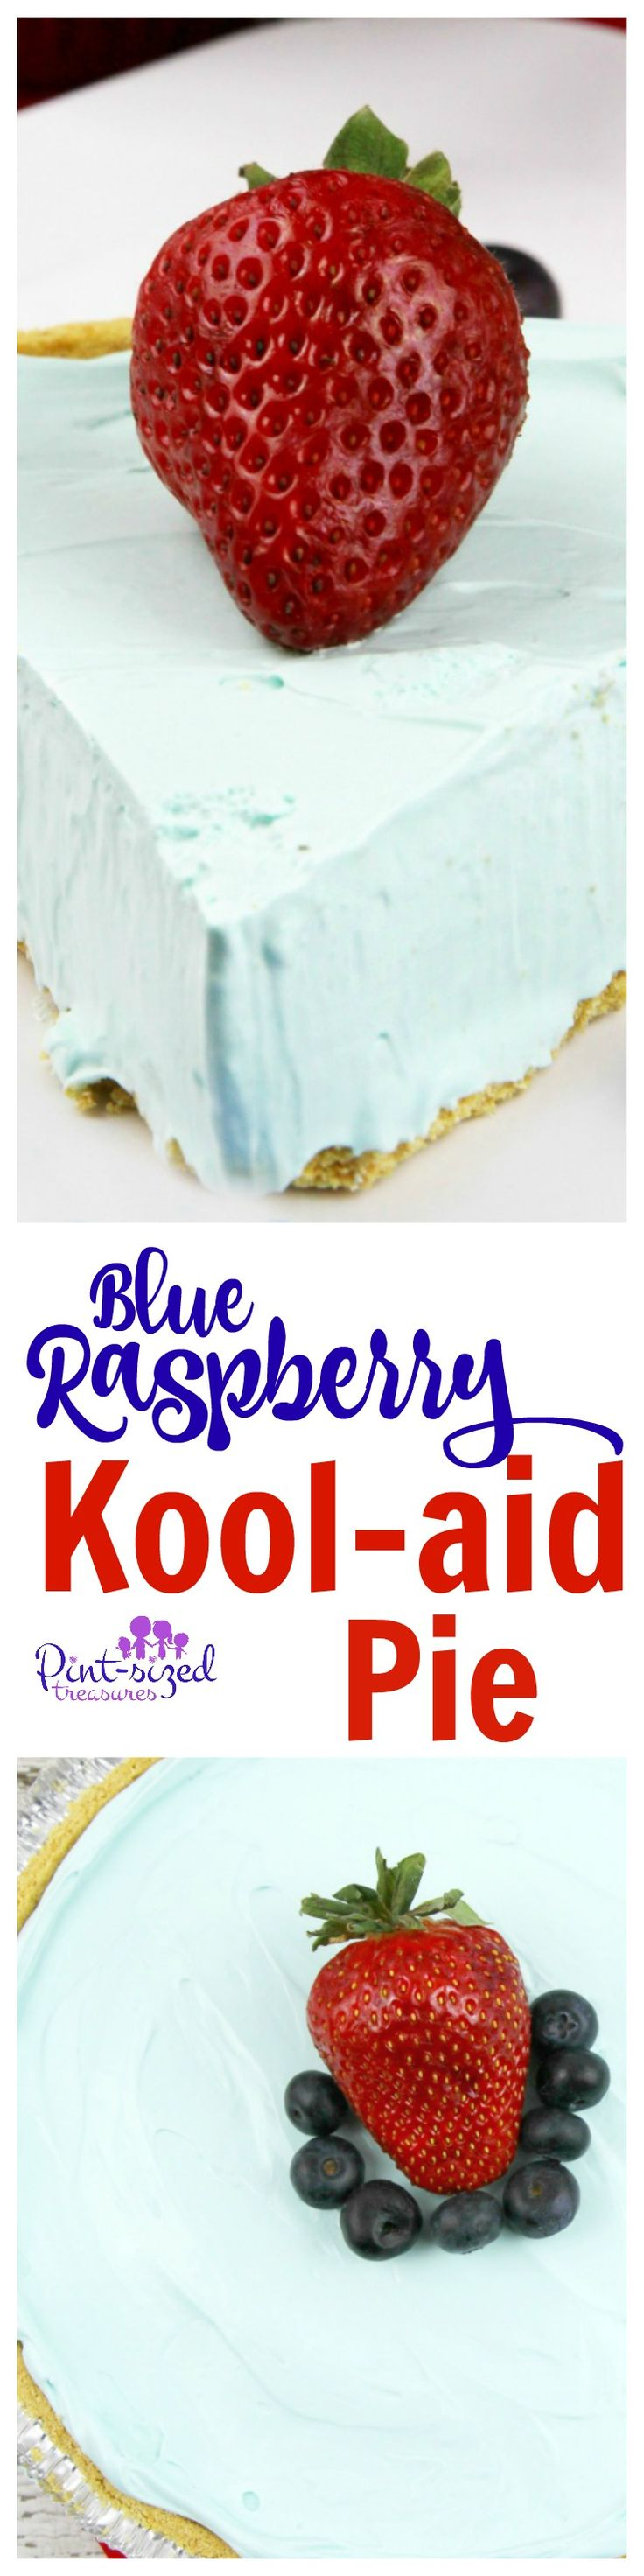 A no-bake dessert that's gorgeous, creamy, sweet and ready in just a few minutes! Indulge in blue raspberry Kool-Aid pie today!